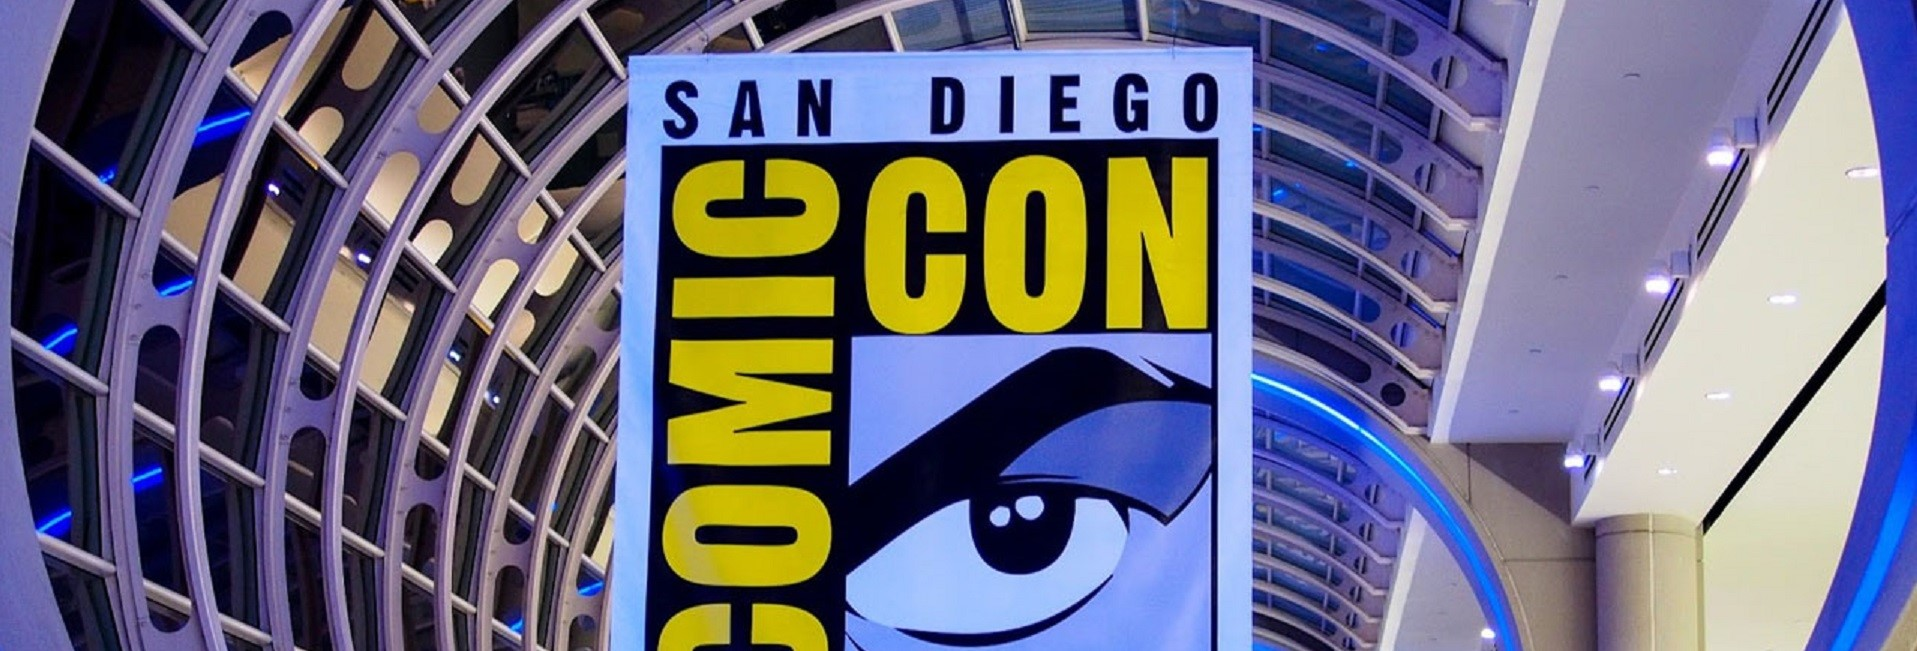 SDCC Announcement Header